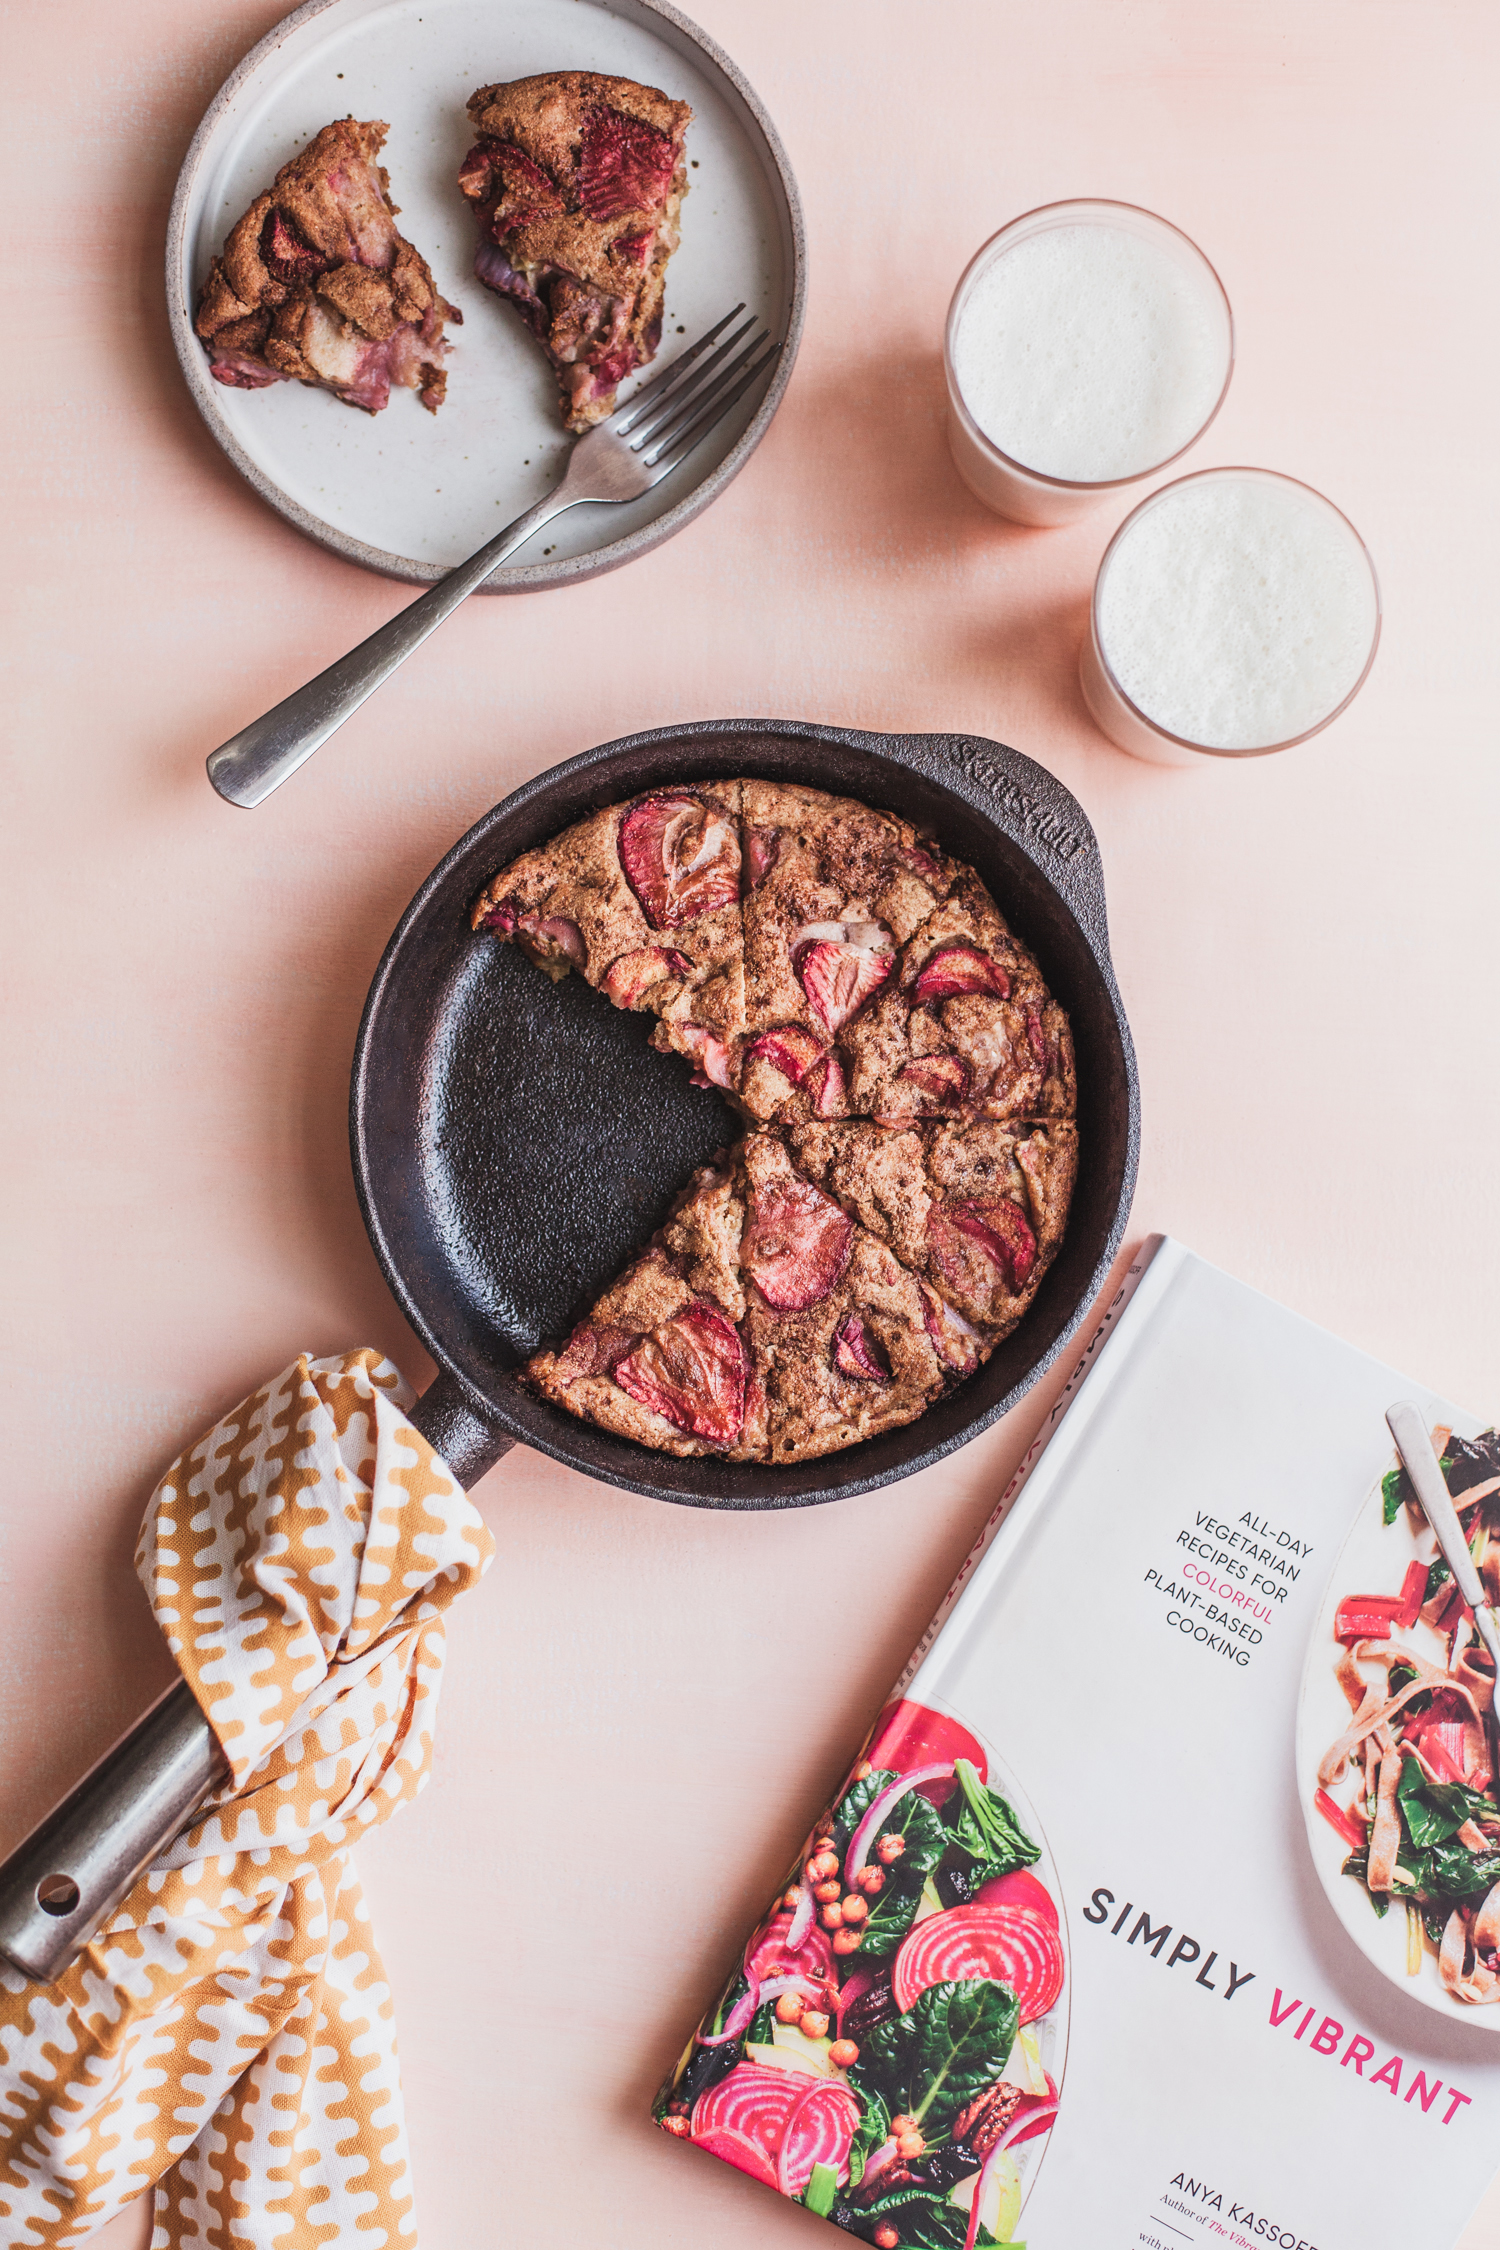 Strawberry and Rhubarb Oven Pancake - Simply Vibrant Book Club + Giveaway